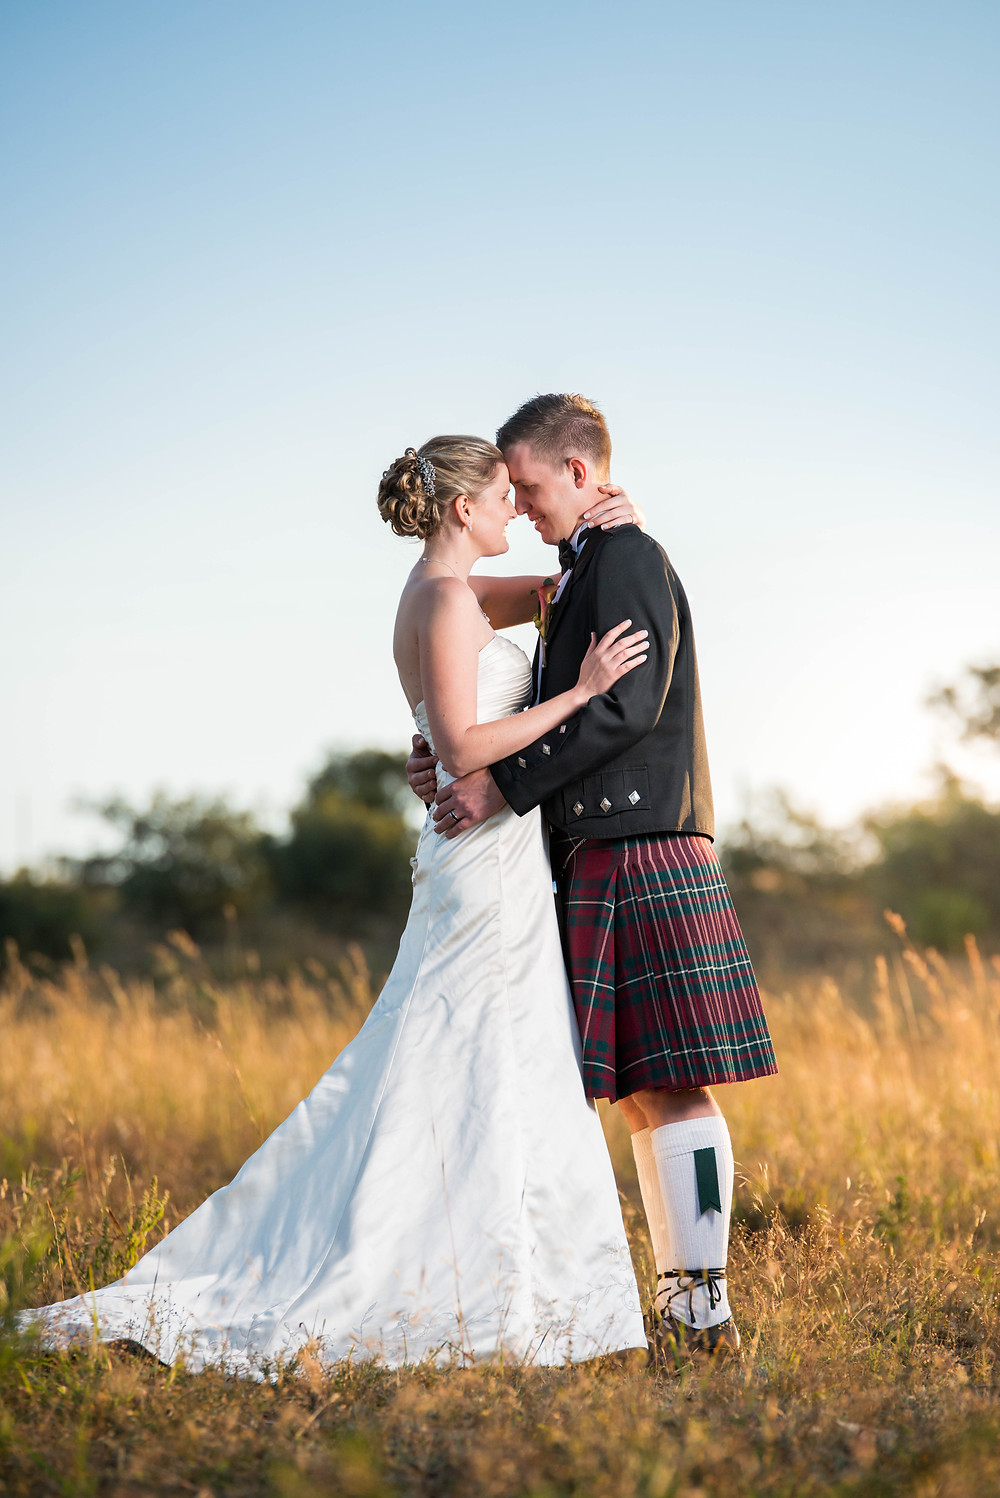 sun kissed wedding photos